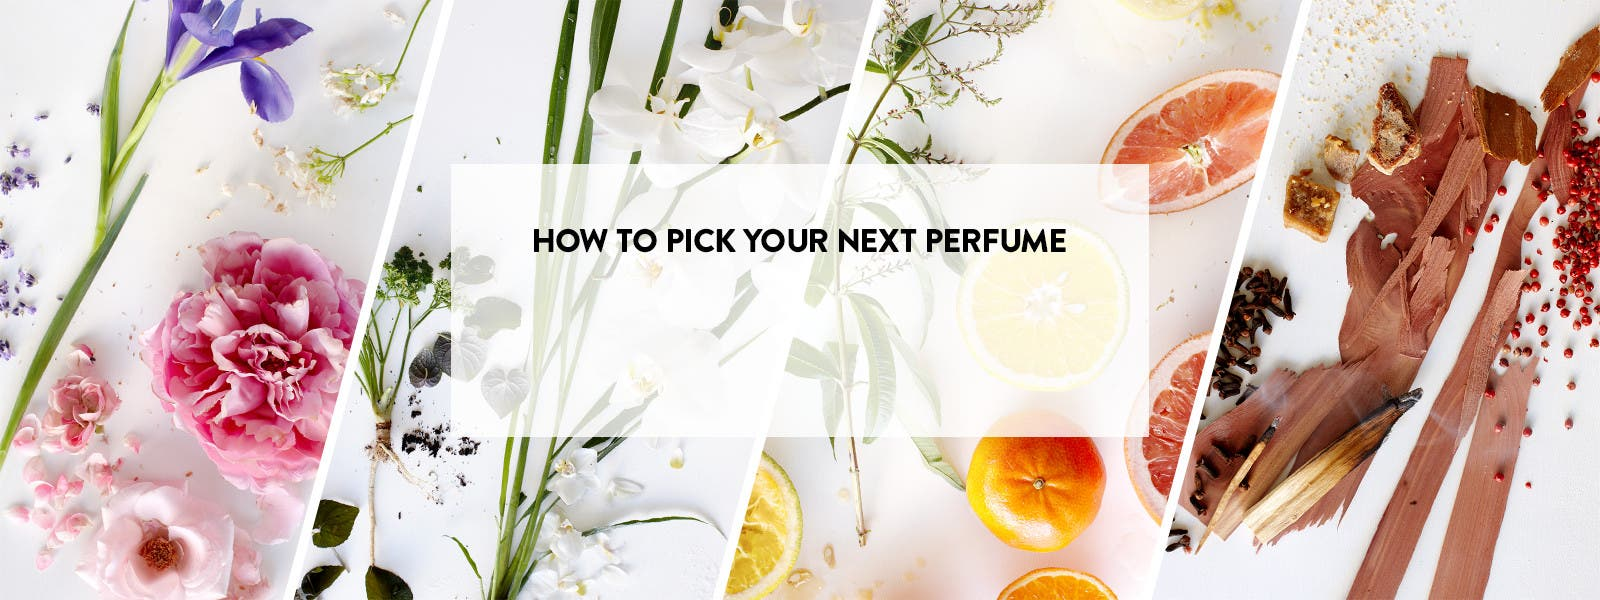 How to pick your next perfume.